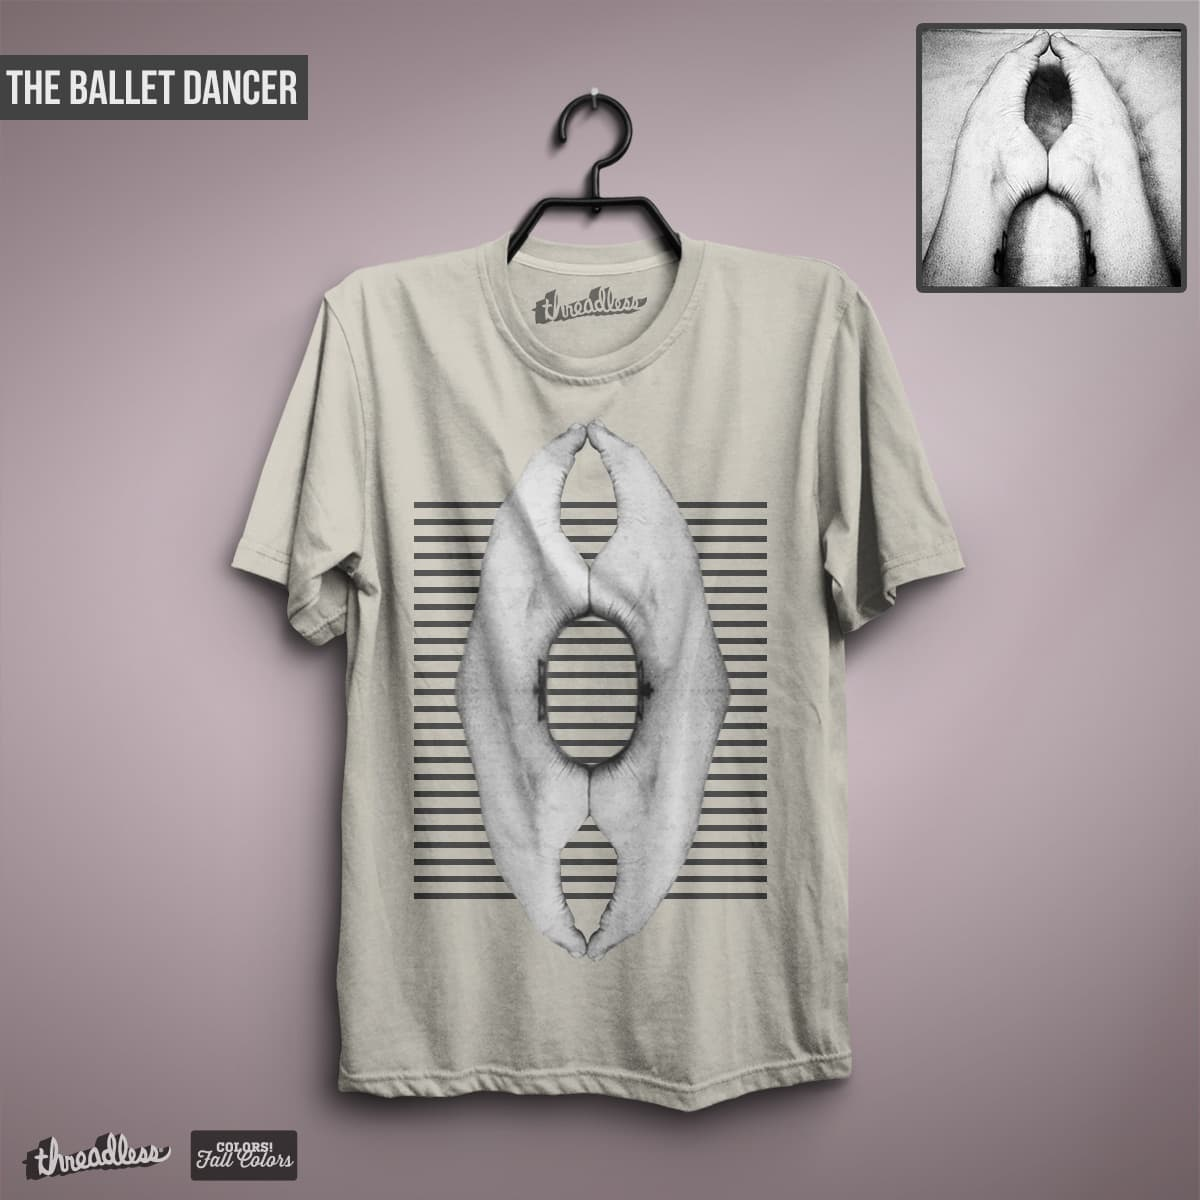 The Ballet Dancer by milios.thanasis on Threadless